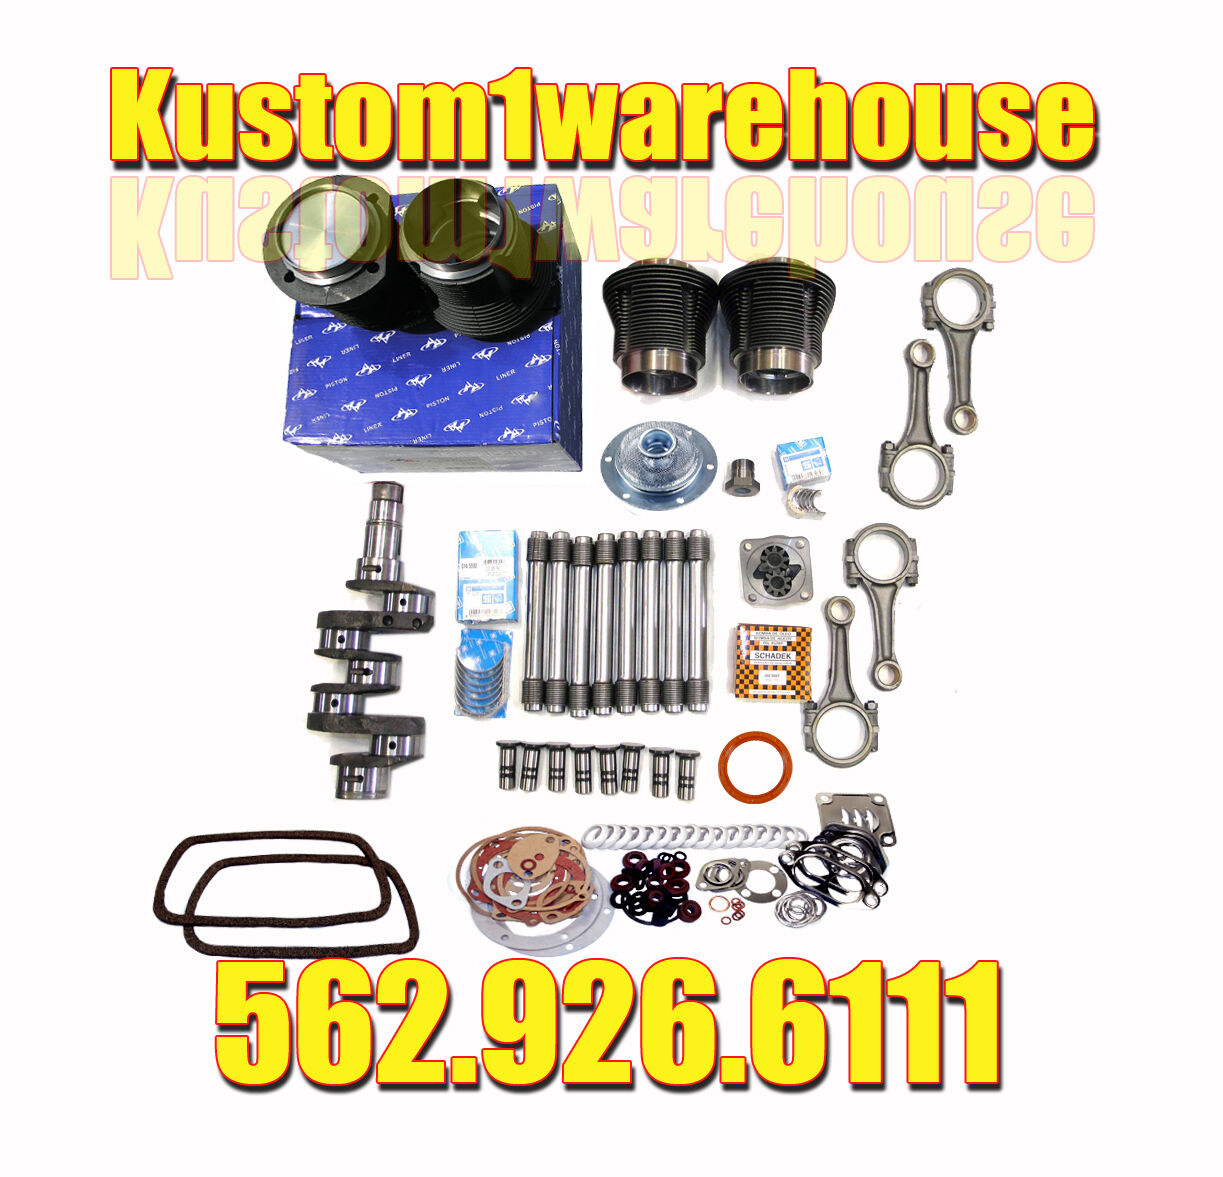 VW 1835cc Air-Cooled Engine Kit for Sale